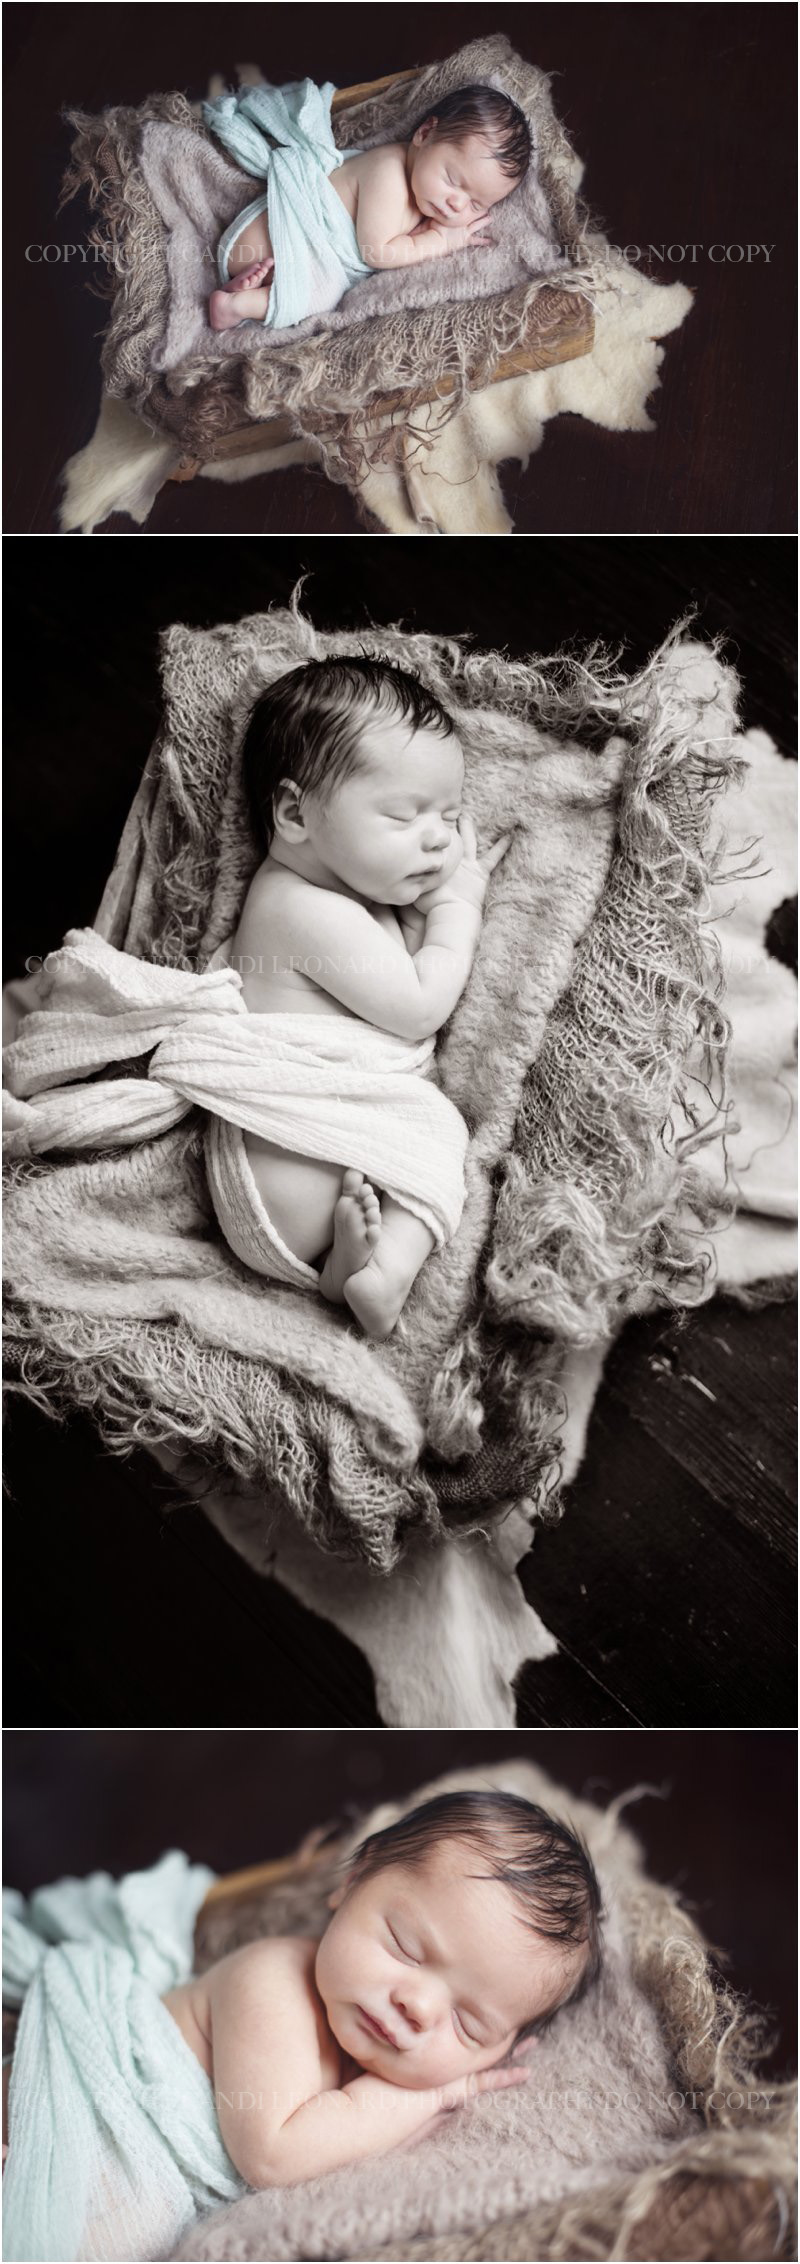 Pittsboro_NC_newborn_photographer_0876